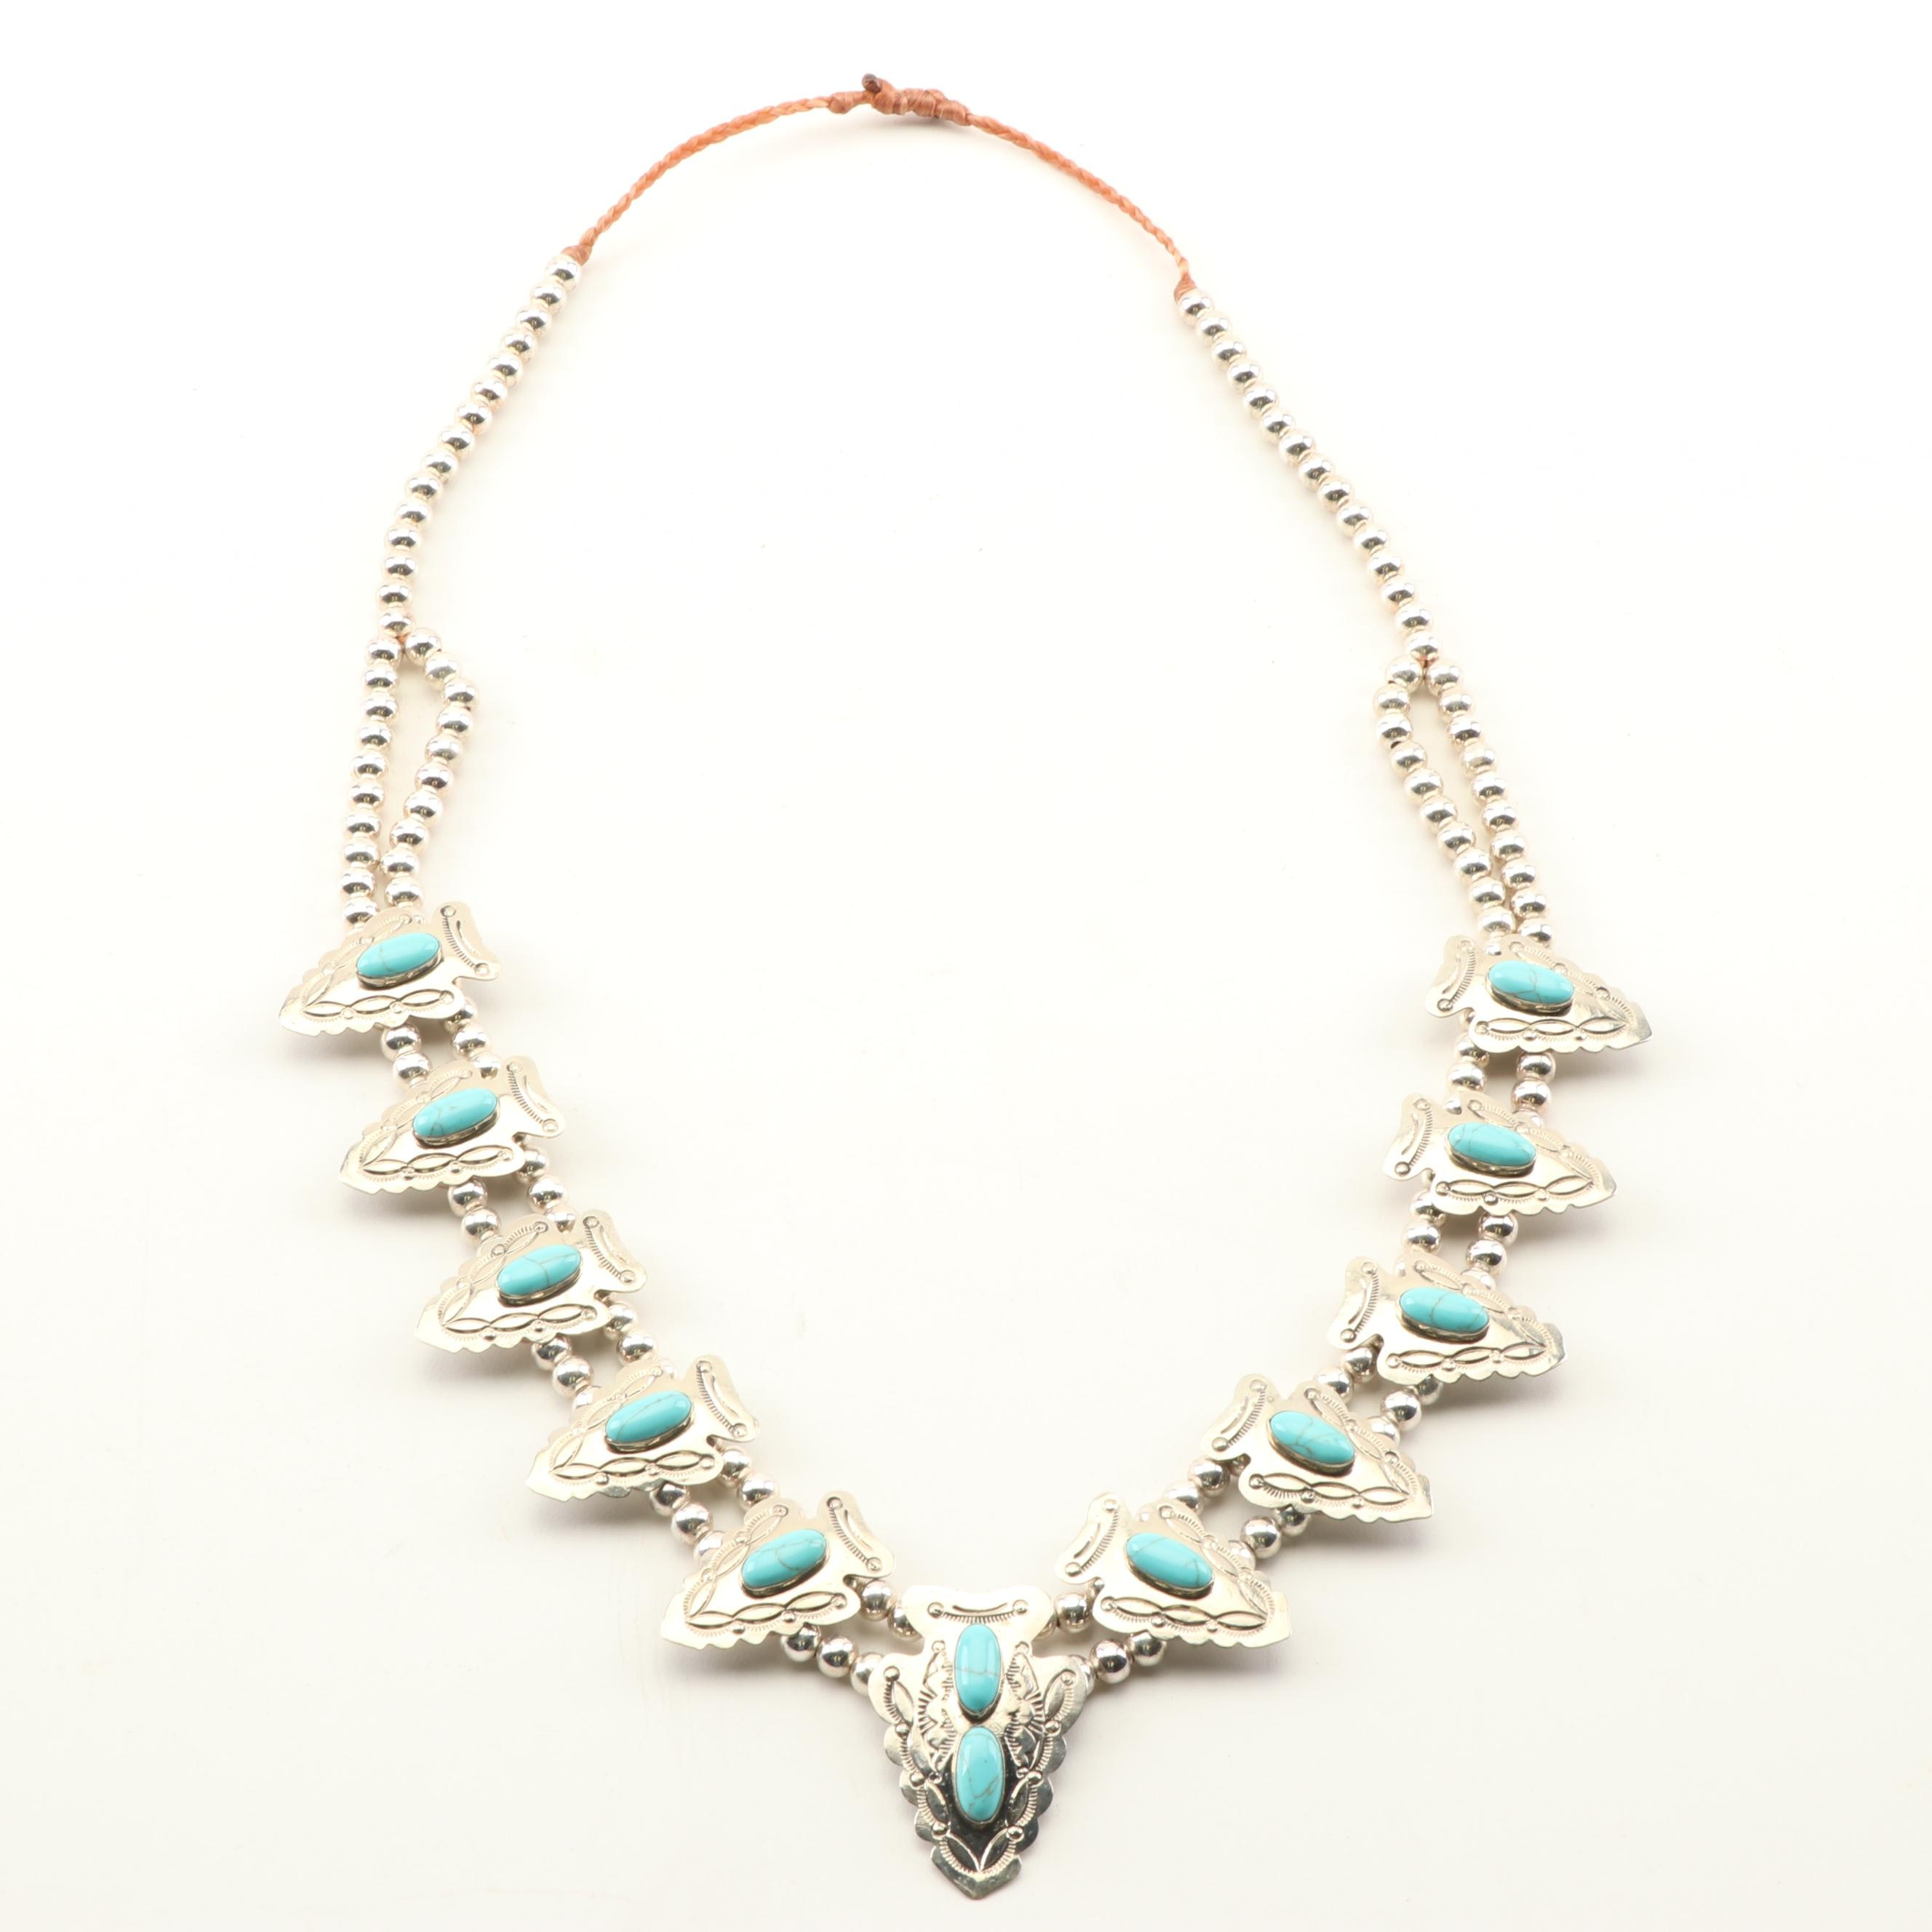 Silver Tone Simulated Turquoise Squash Blossom Necklace